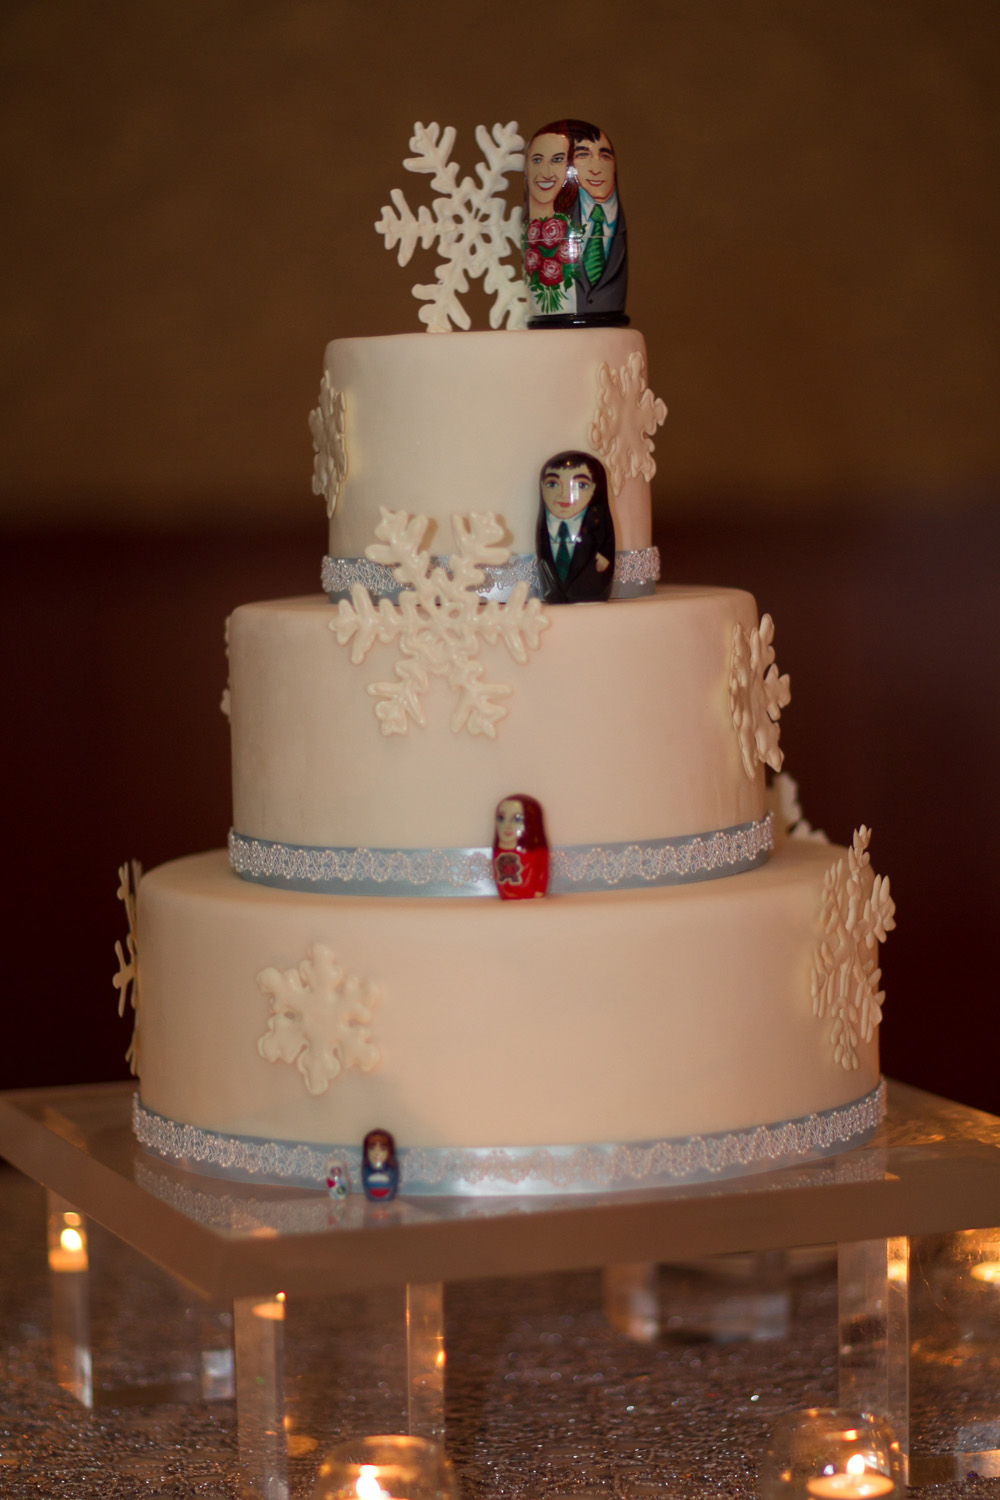 russian wedding cake traditions a few of my favorite things russian culture theme 2 of 3 19482